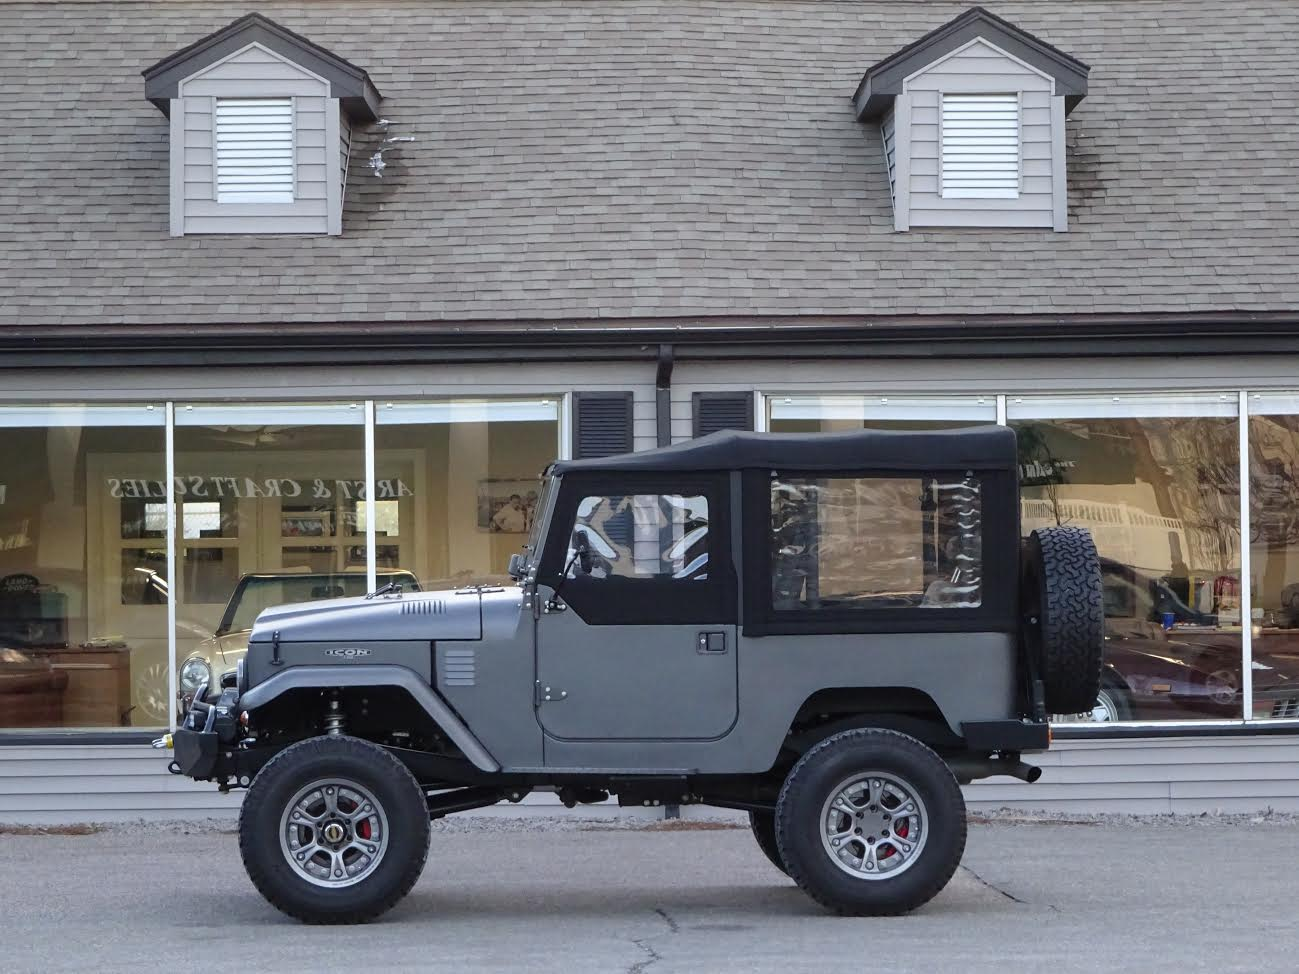 1965 toyota land cruiser fj40 icon copley motorcars. Black Bedroom Furniture Sets. Home Design Ideas